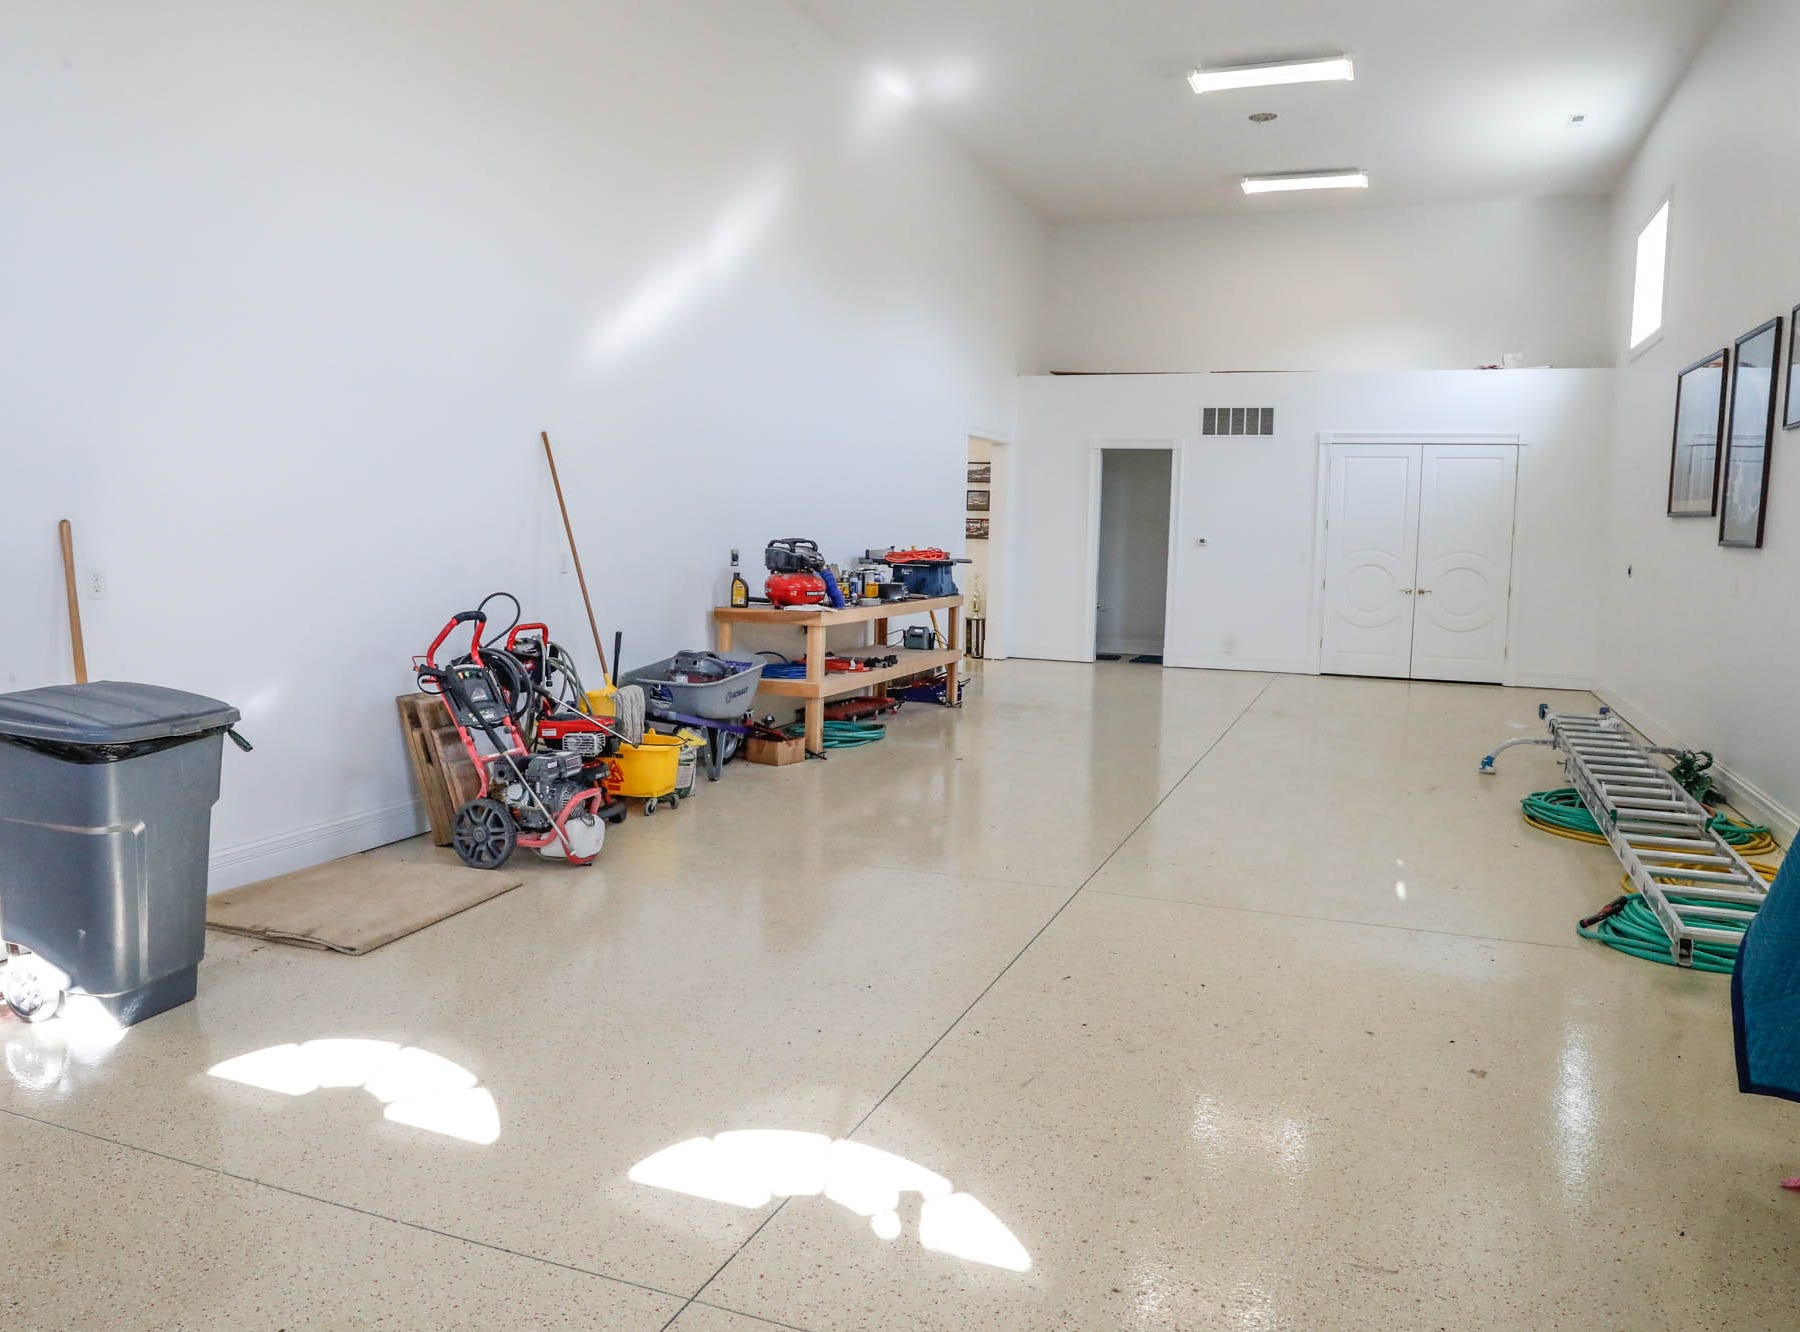 An unattached garage has room for a fleet of cars and a motorhome at a Greenwood home up for sale at 1216 Stone Ridge Court, Greenwood, Ind. on Wednesday, Jan. 30, 2019. The home features 8,234 square feet, four bedrooms, two master suites, a 10 car garage, and an exercise room.